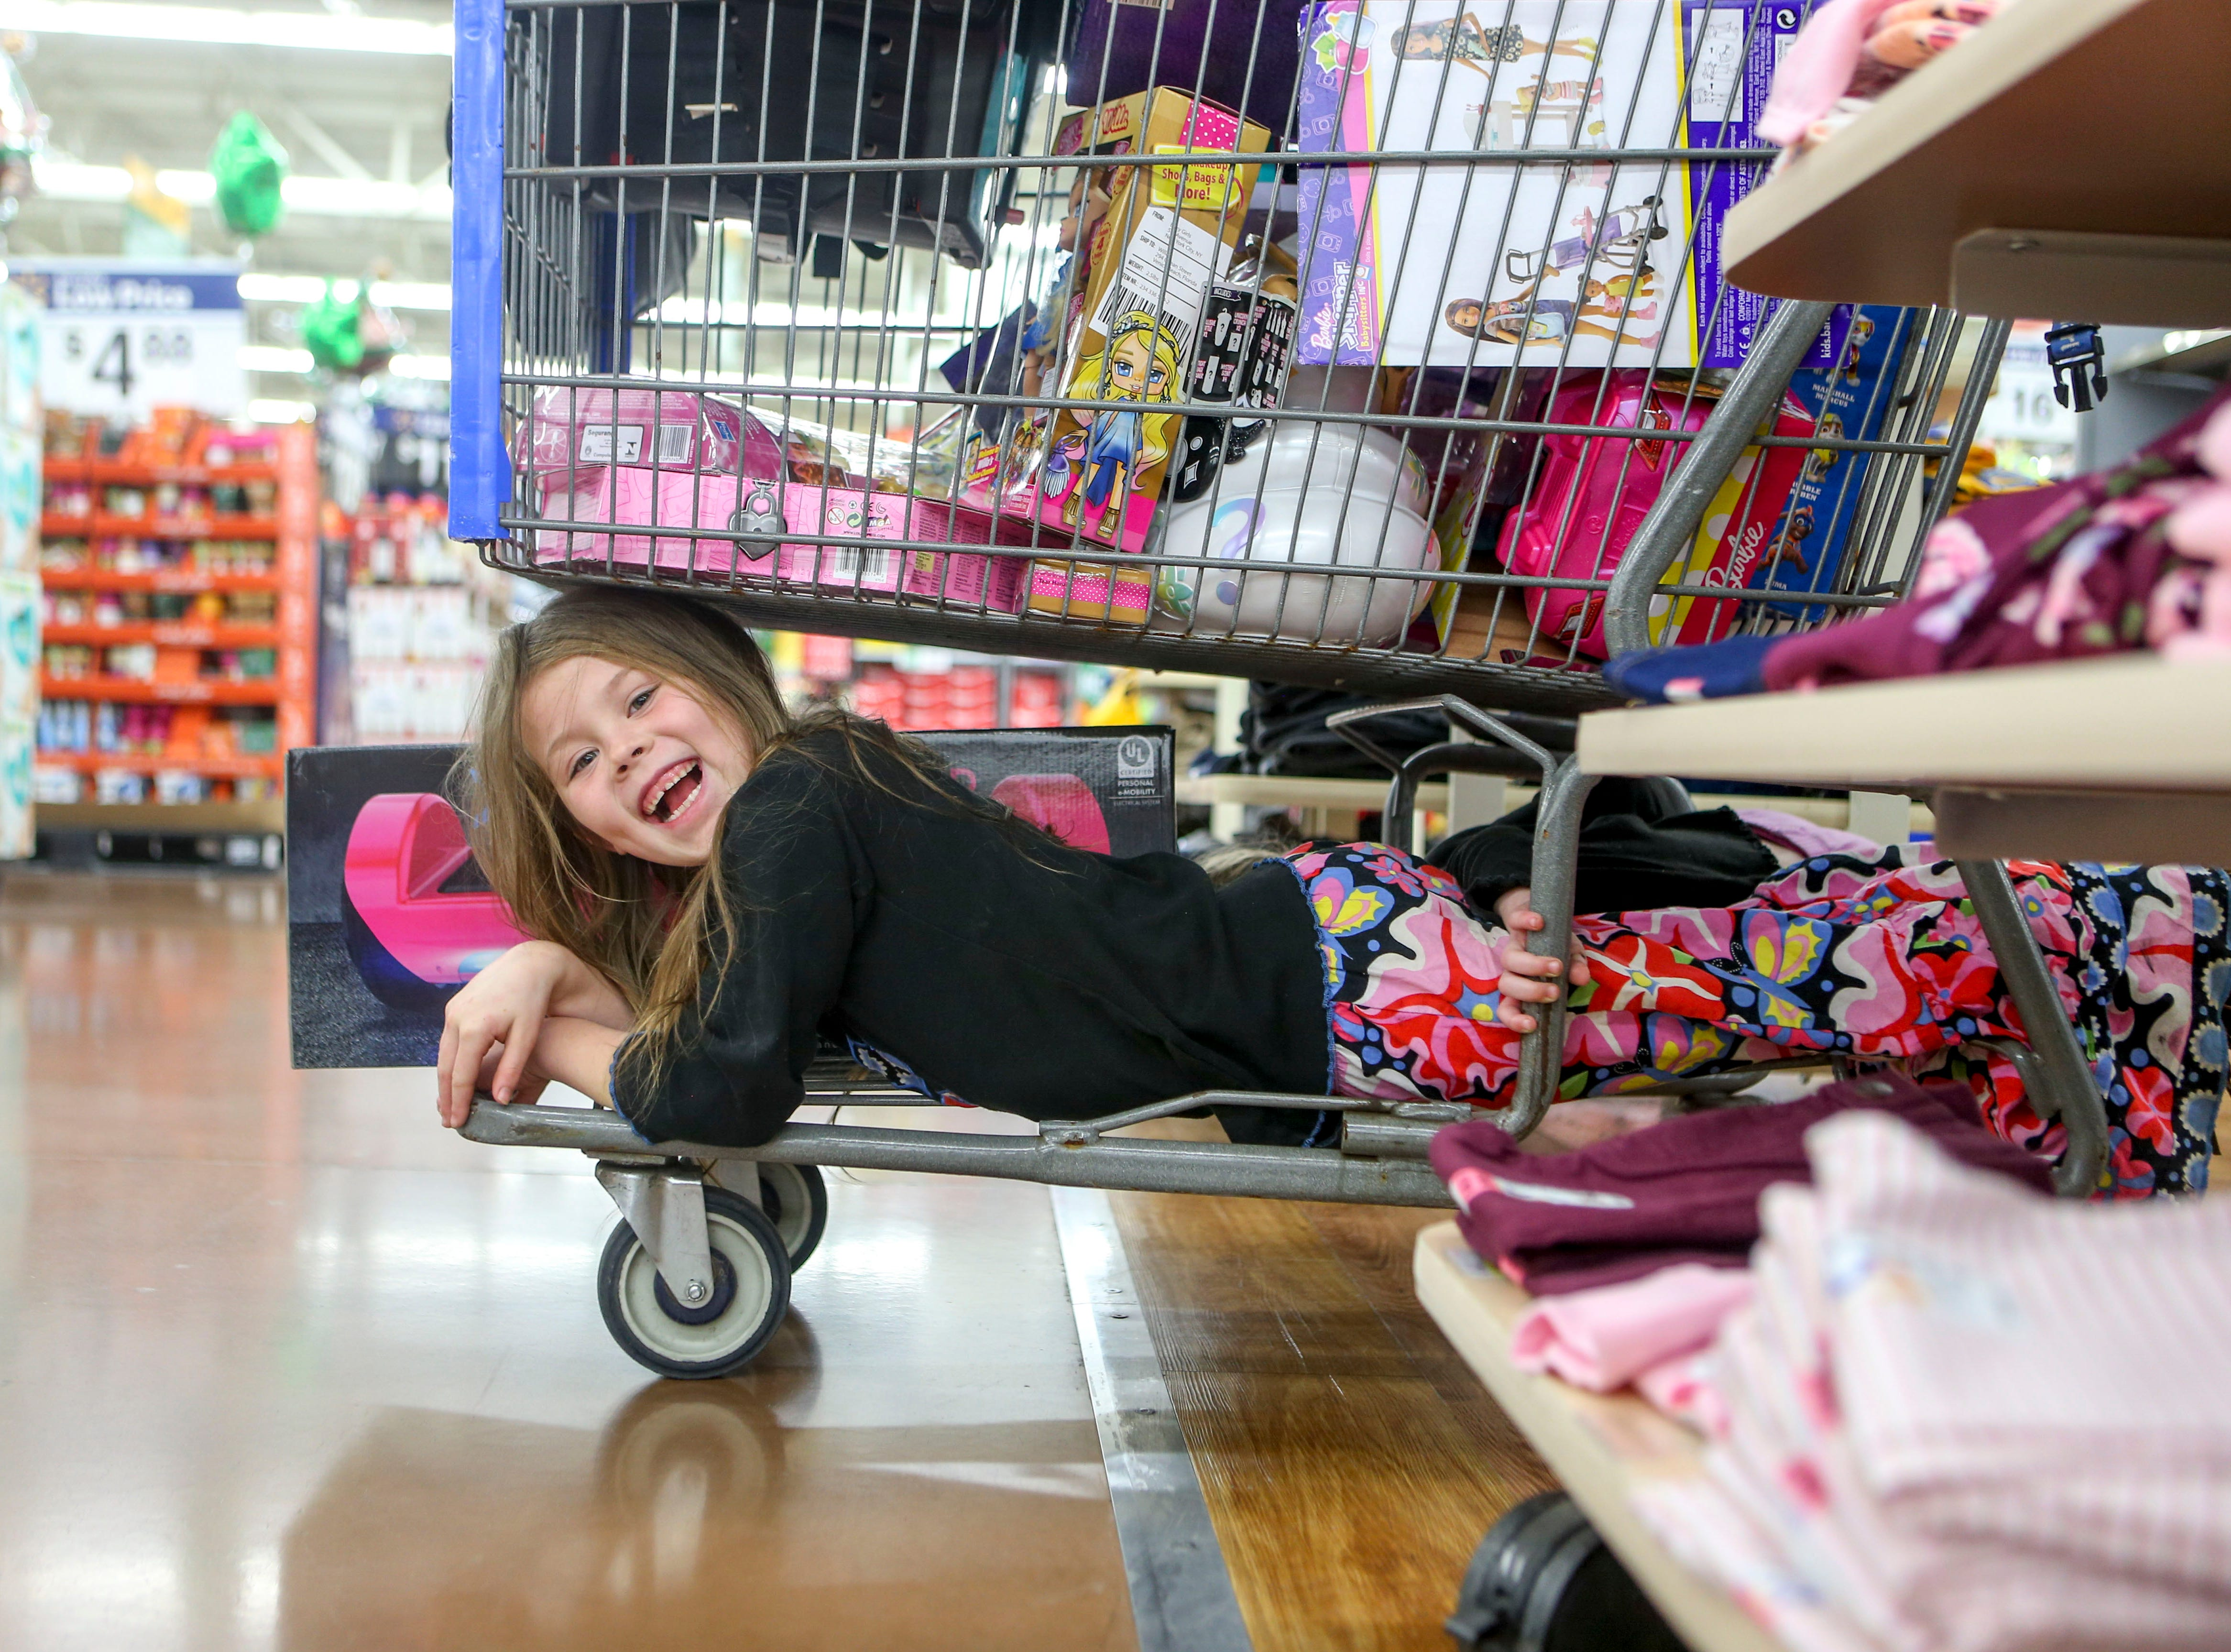 Bailey Sutcliffe, 4, exclaims while being pushed around in the bottom of a shopping cart during shopping time for the annual Shop with a Cop program at Walmart in Milan, Tenn., on Thursday, Dec. 13, 2018.